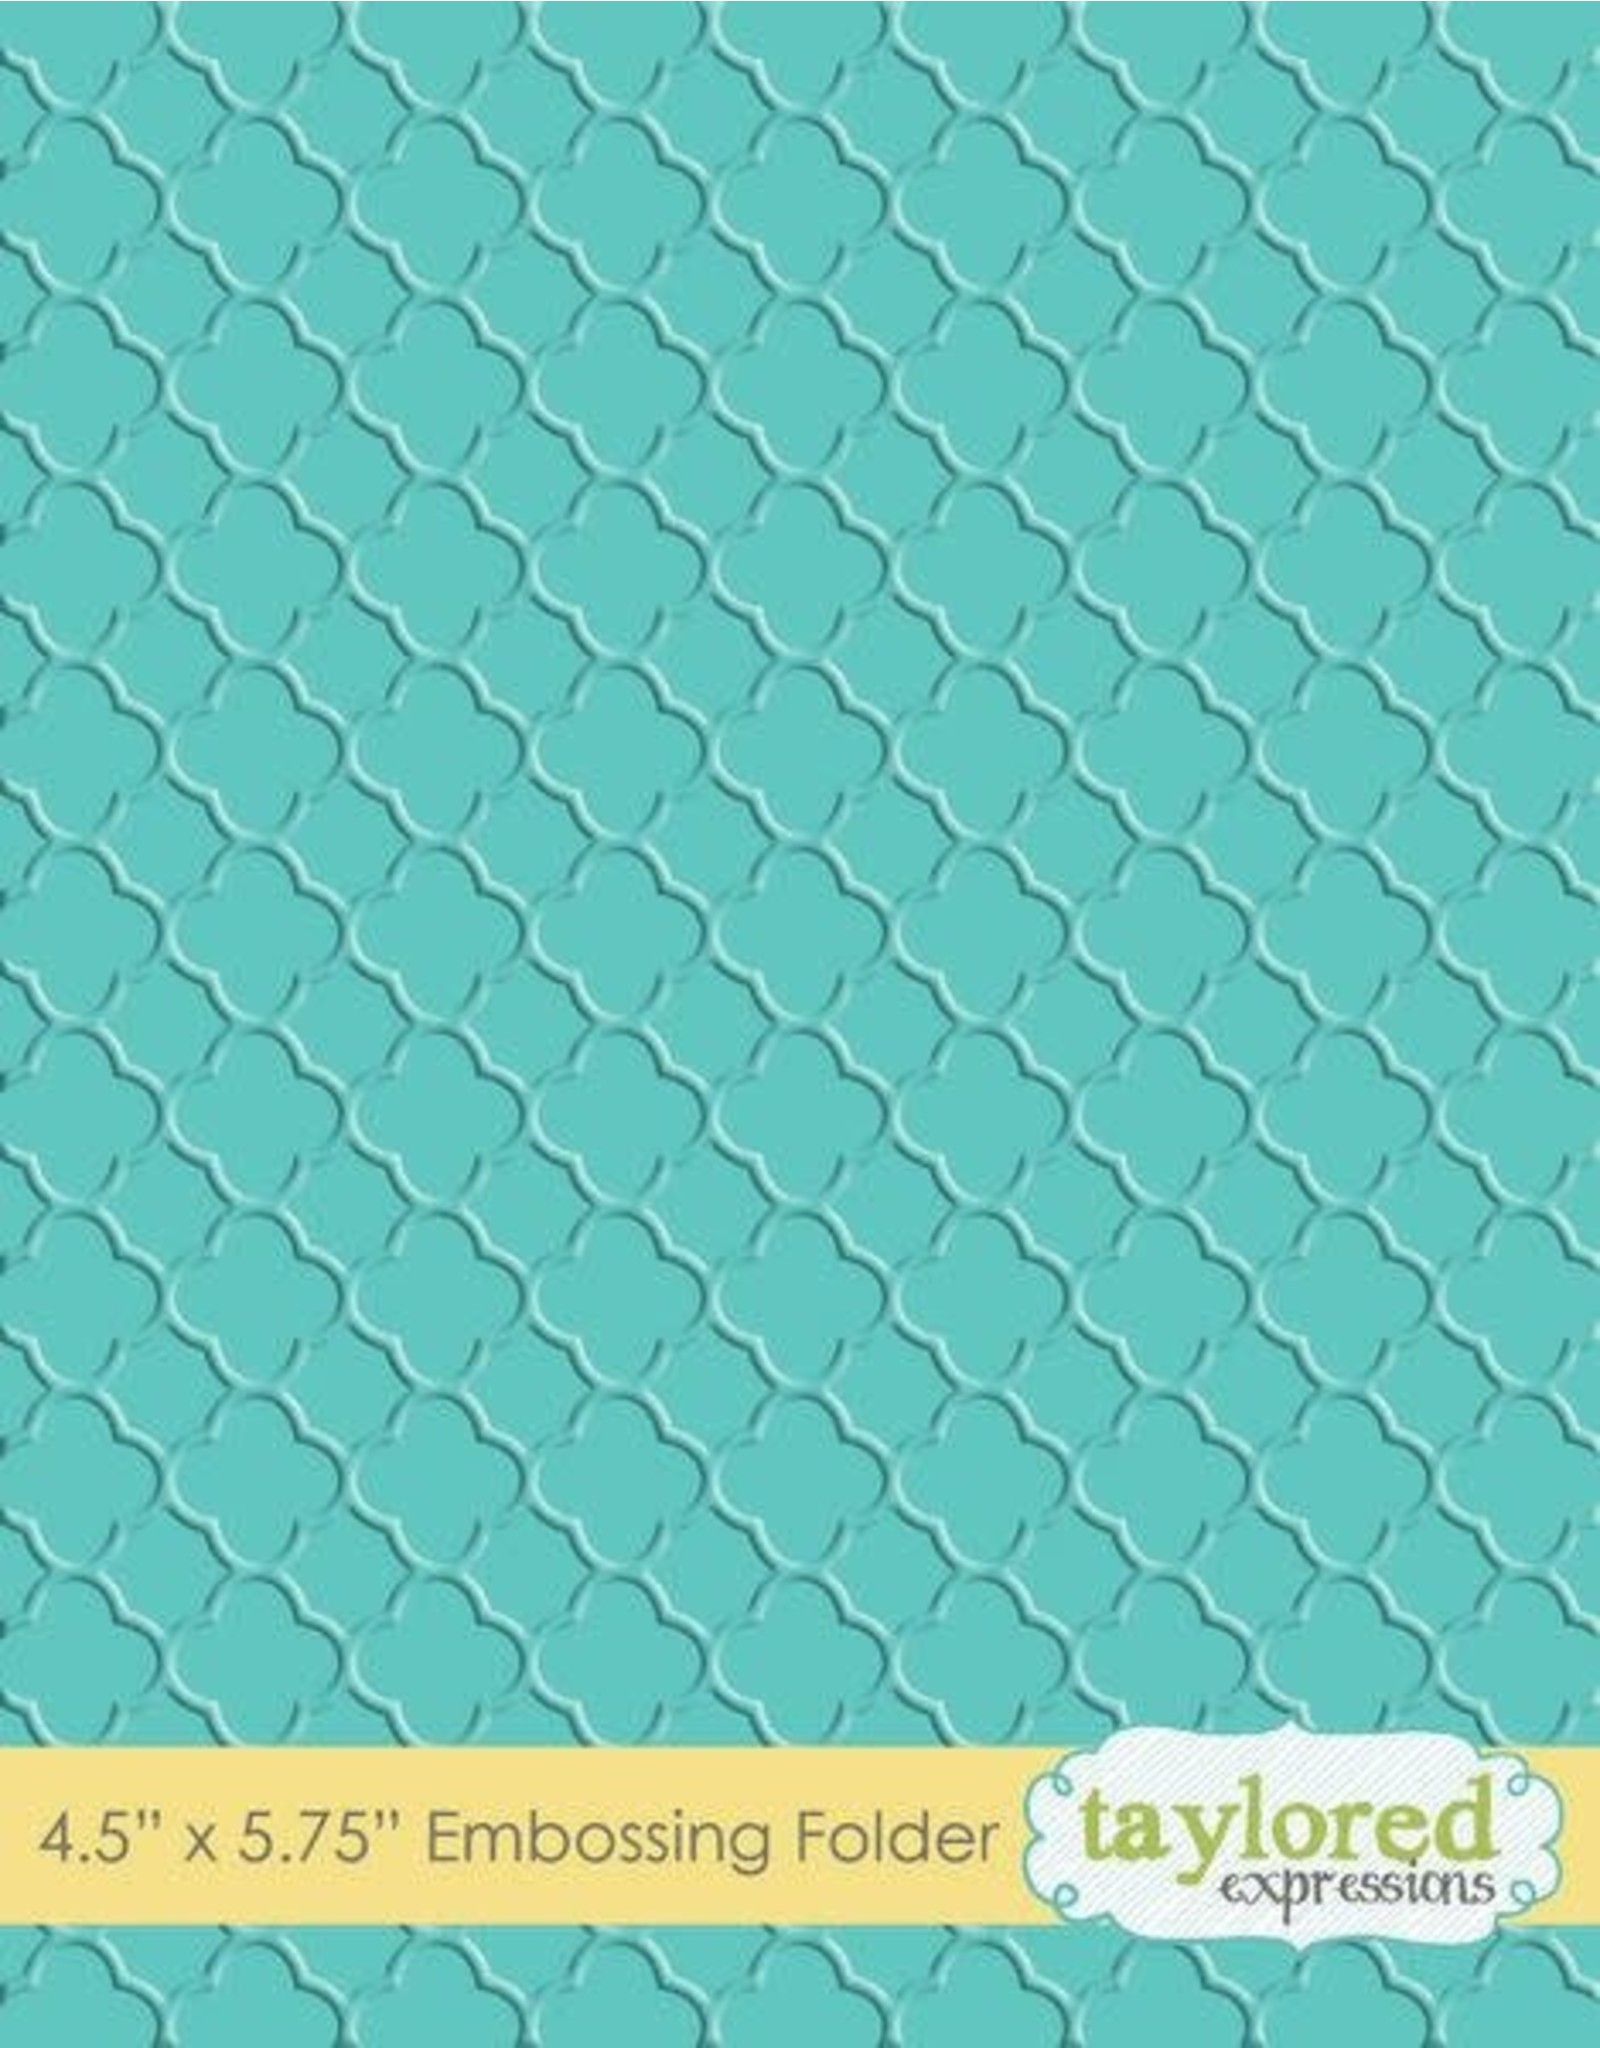 Taylored Expressions Quatrefoil - Embossing Folder